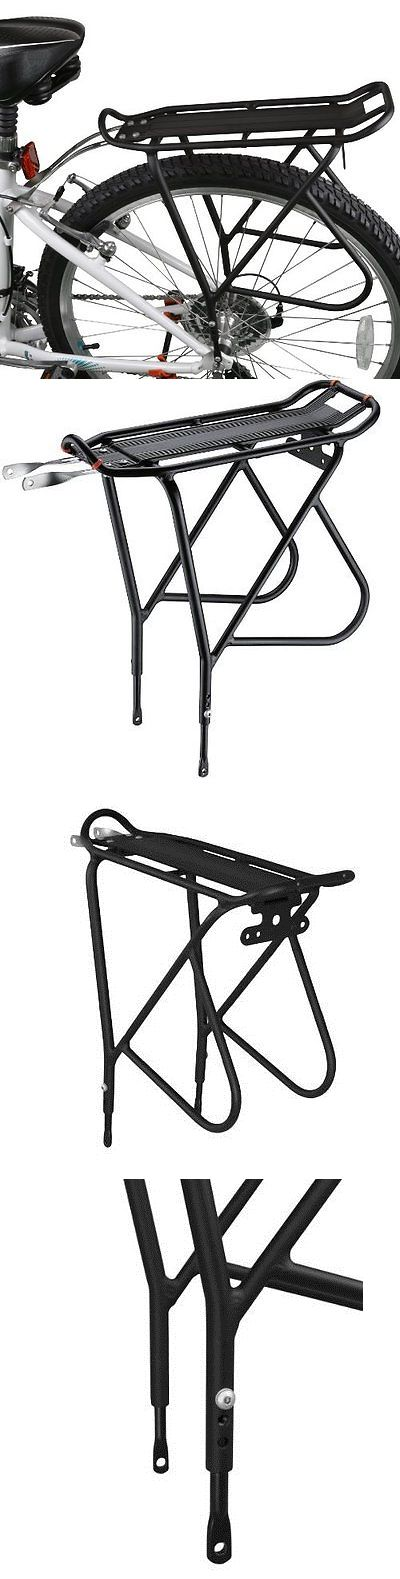 Carrier and Pannier Racks 177836: Bike Carrier Rack For Heavier Top And Side Storage 26-29 Frames Pannier Racks BUY IT NOW ONLY: $35.4